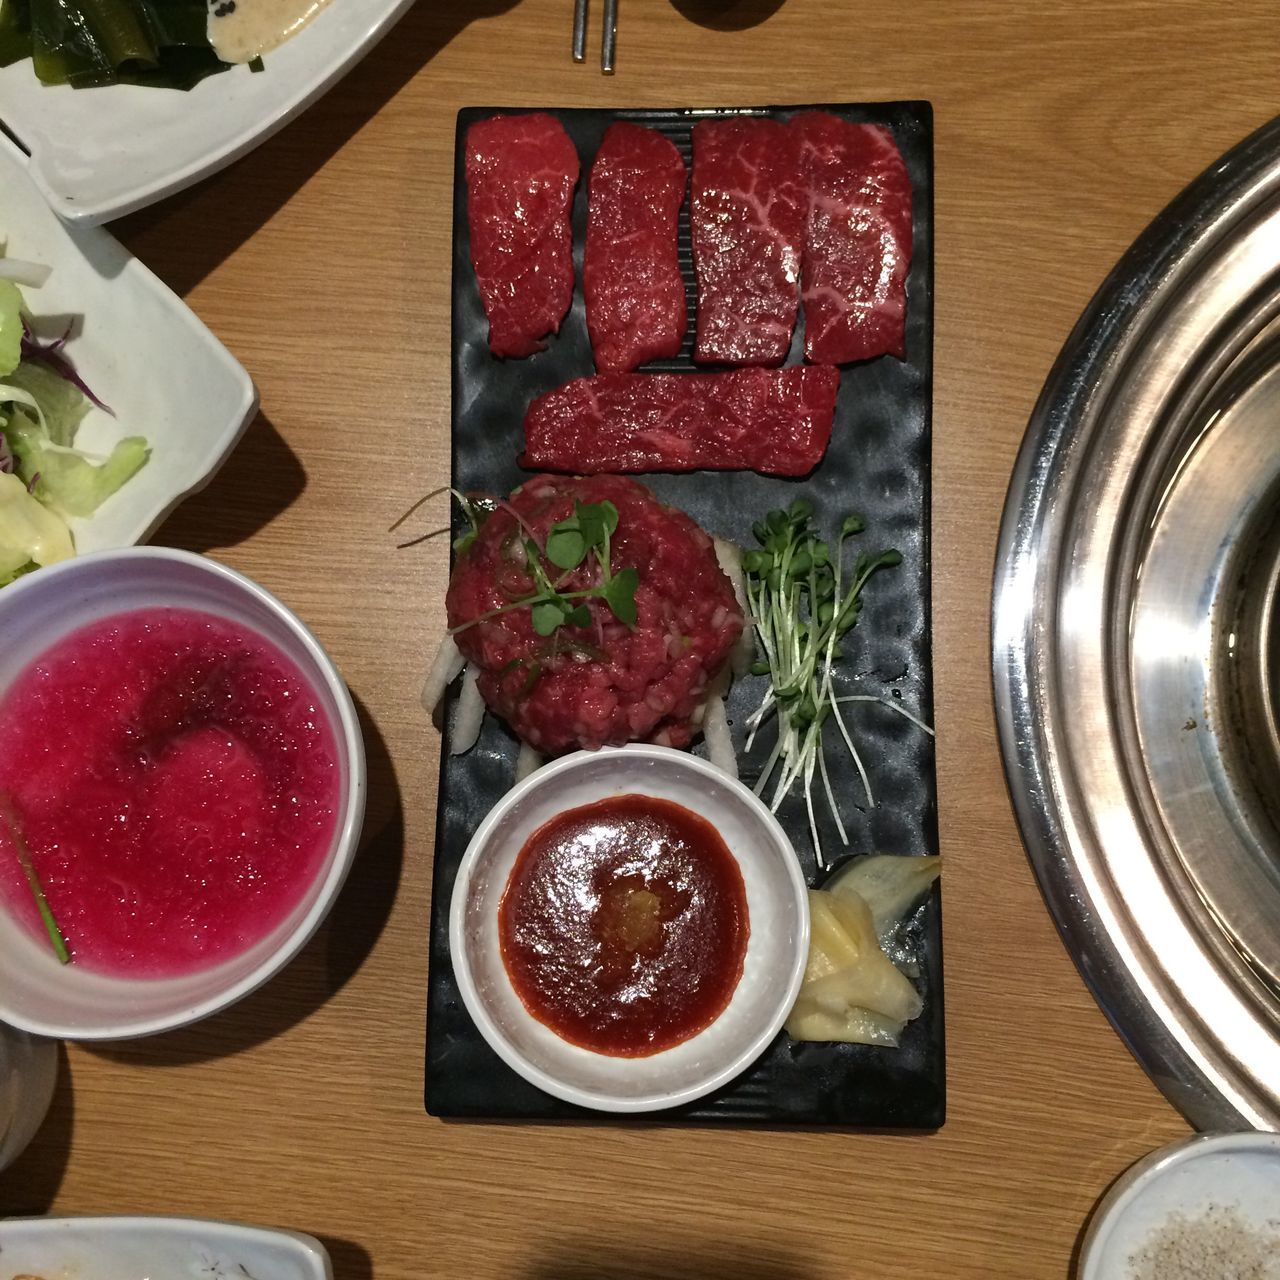 food and drink, food, directly above, plate, table, freshness, bowl, red, indoors, high angle view, no people, healthy eating, ready-to-eat, close-up, dip, day